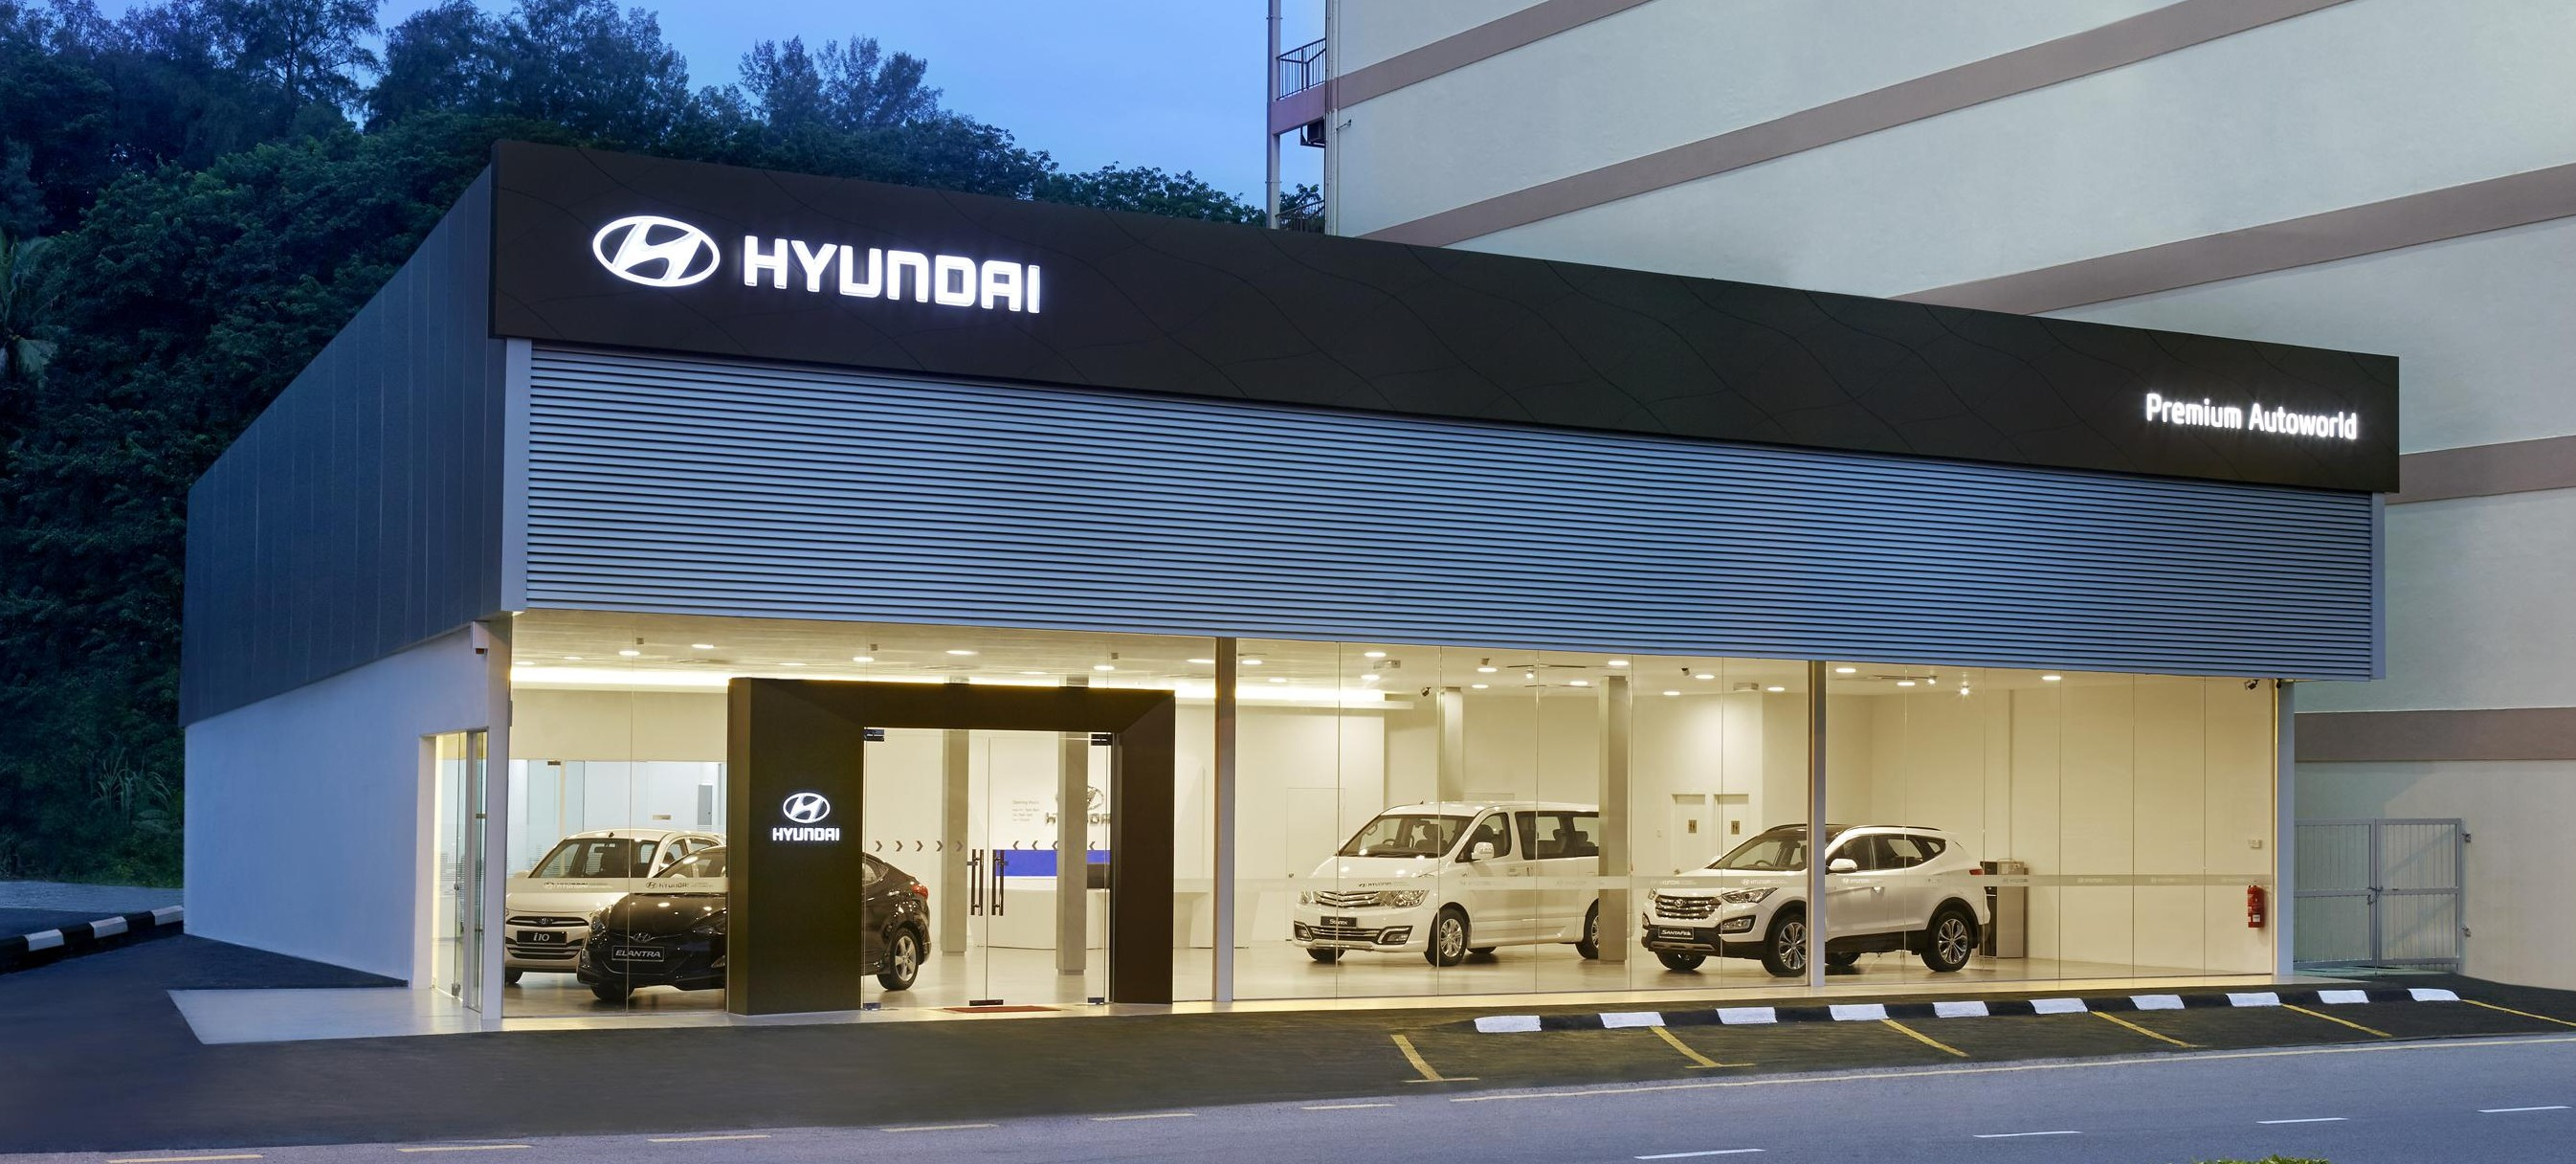 Hyundai malaysia sports revamped global dealership design for Car showroom exterior design